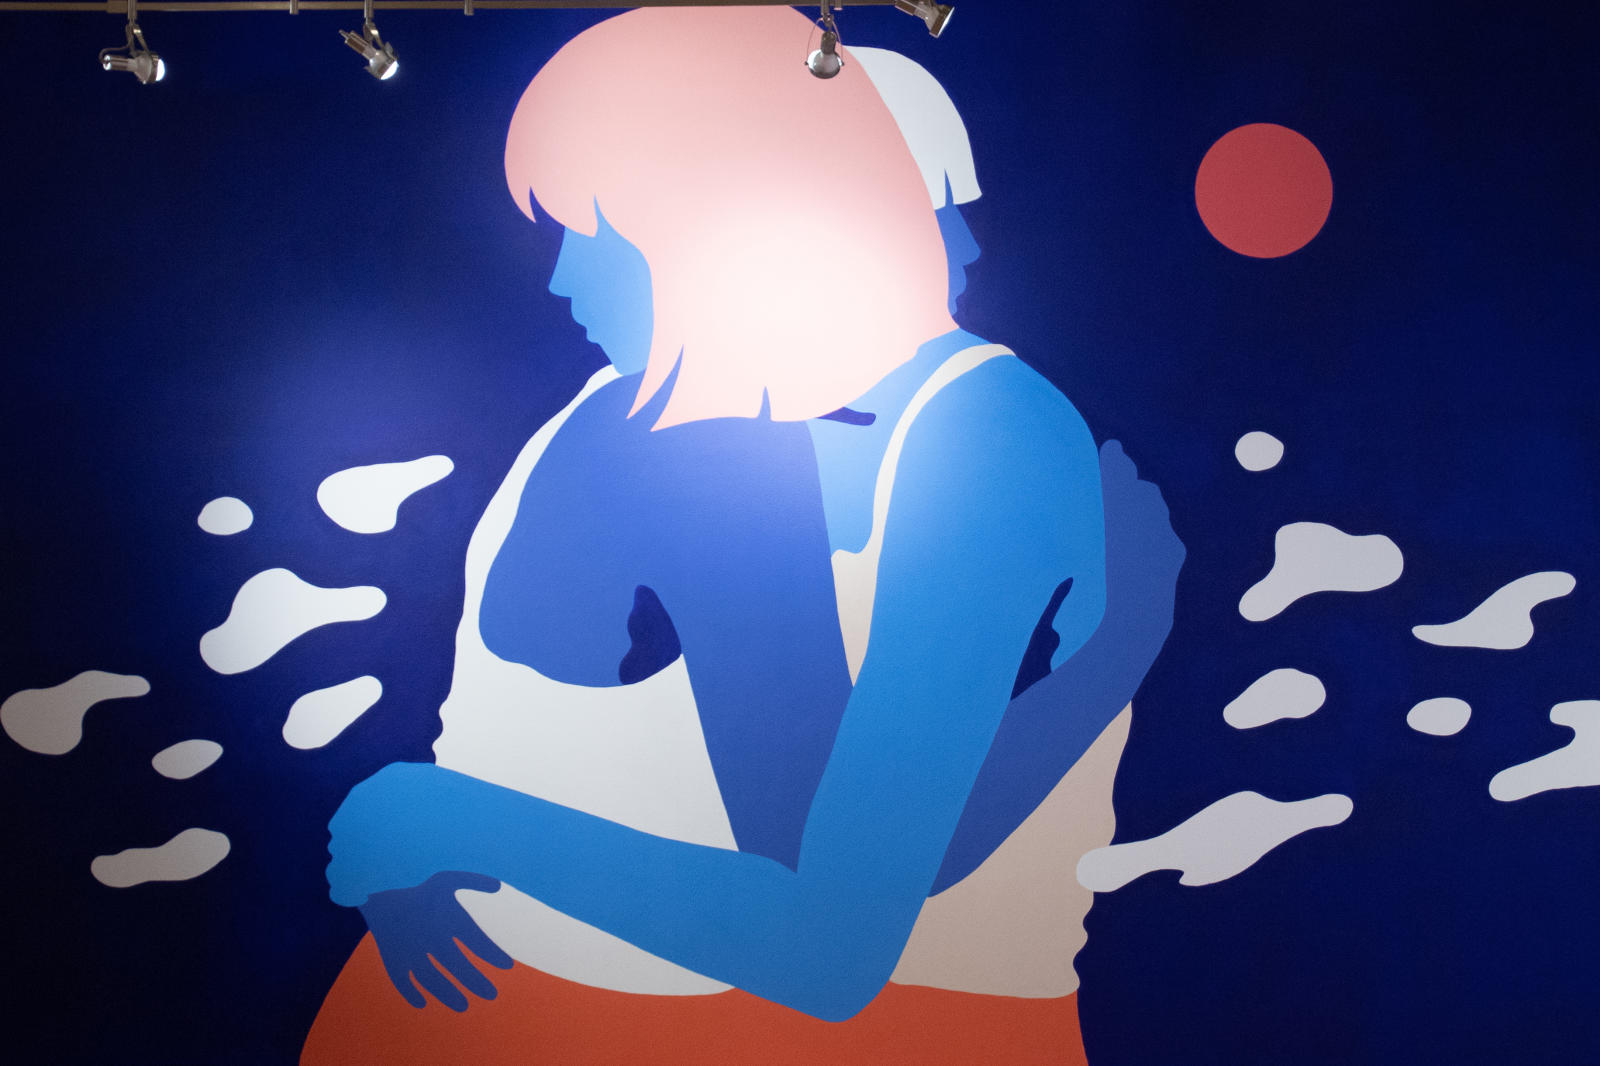 An painting of two people hugging each other